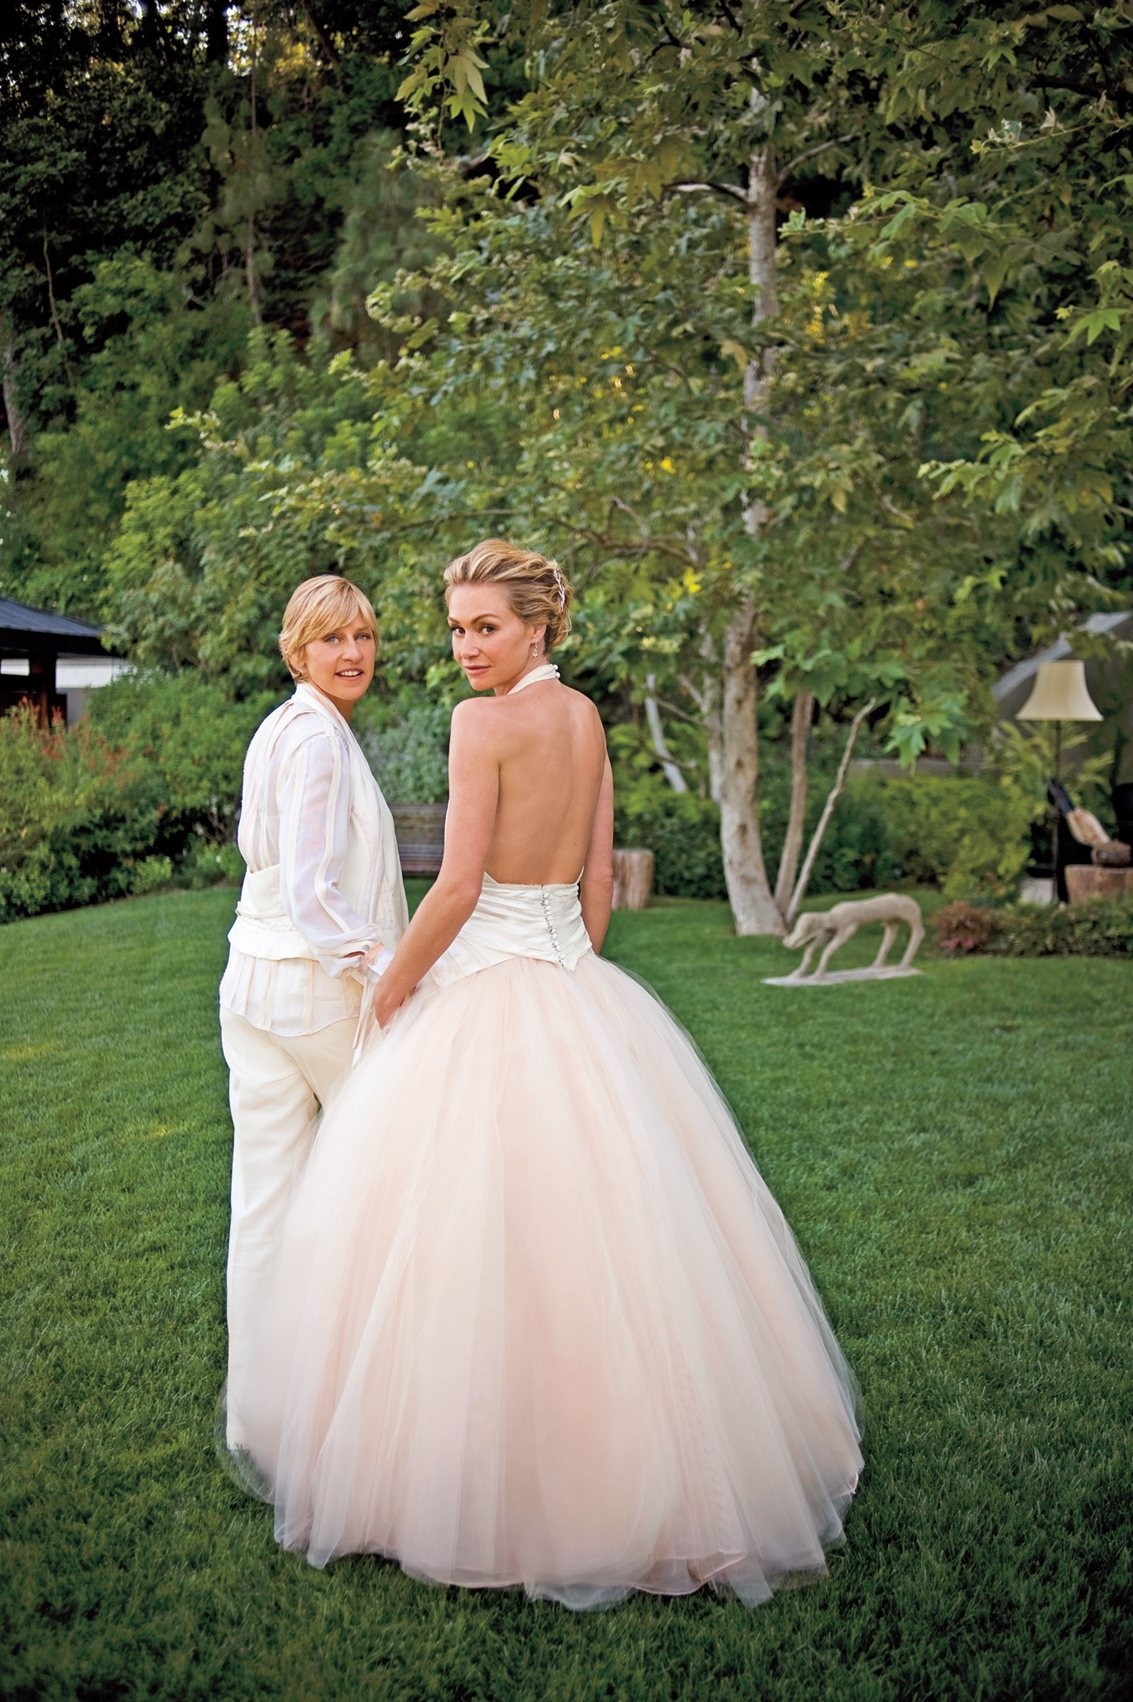 Ellen degeneres portia de rossi elisa my reviews and for Portia de rossi wedding dress